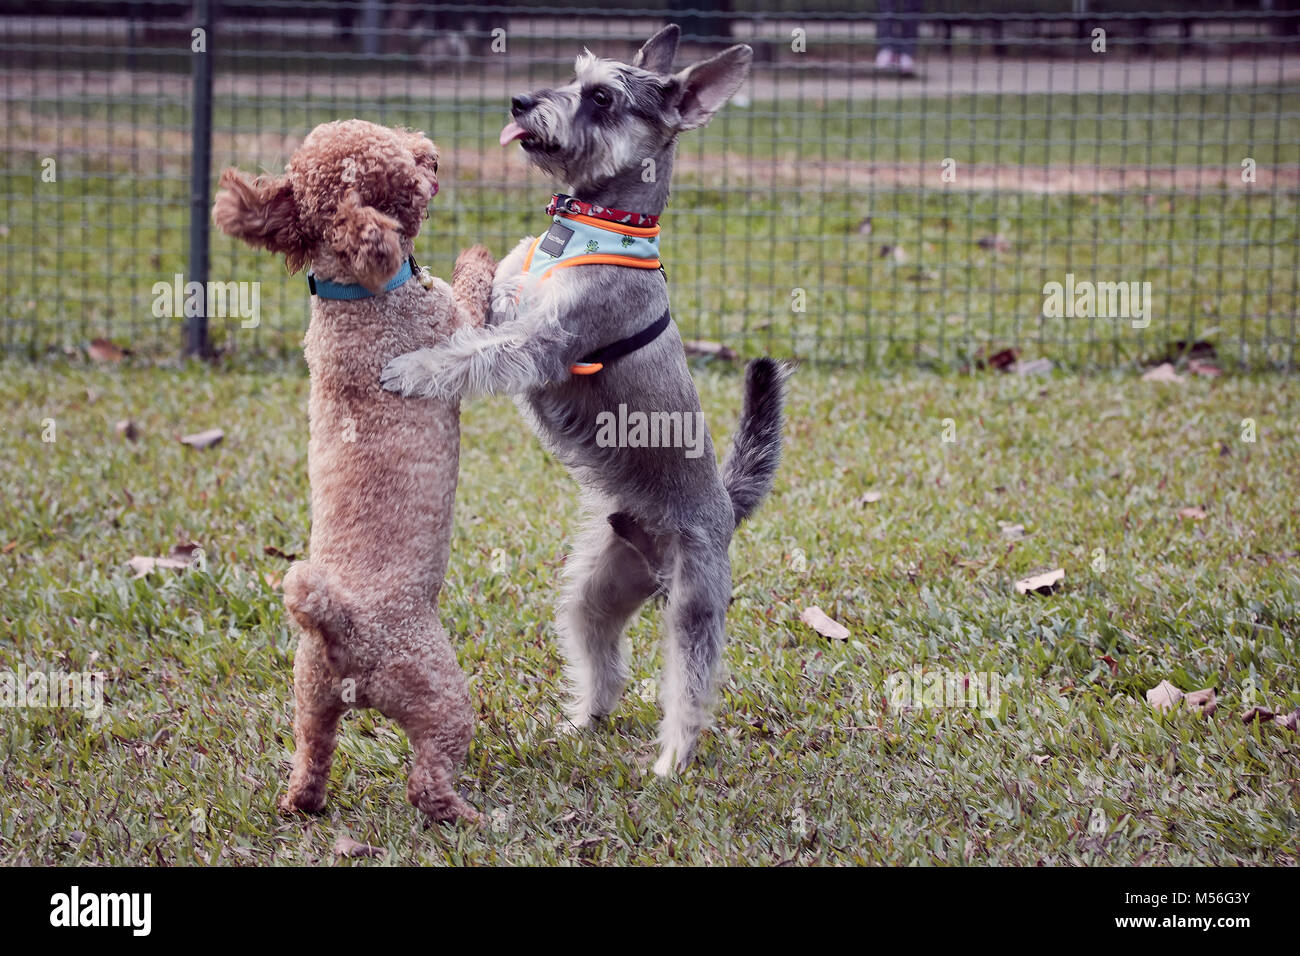 Cute dog, happy dogs playing at park - Stock Image